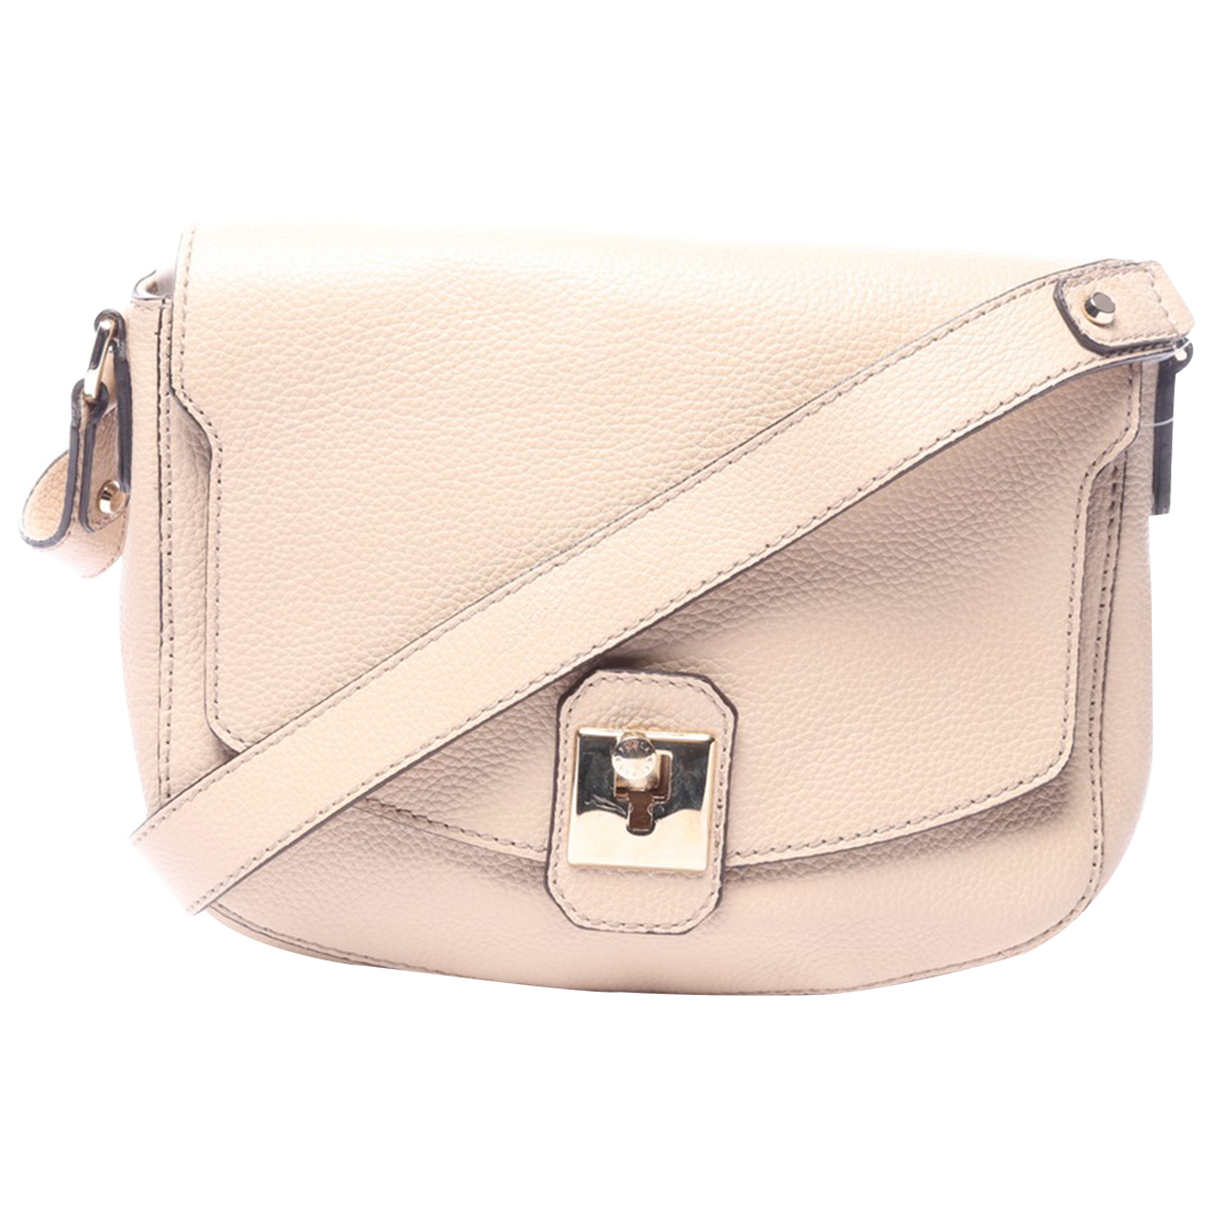 Furla N Beige Leather handbag for Women N